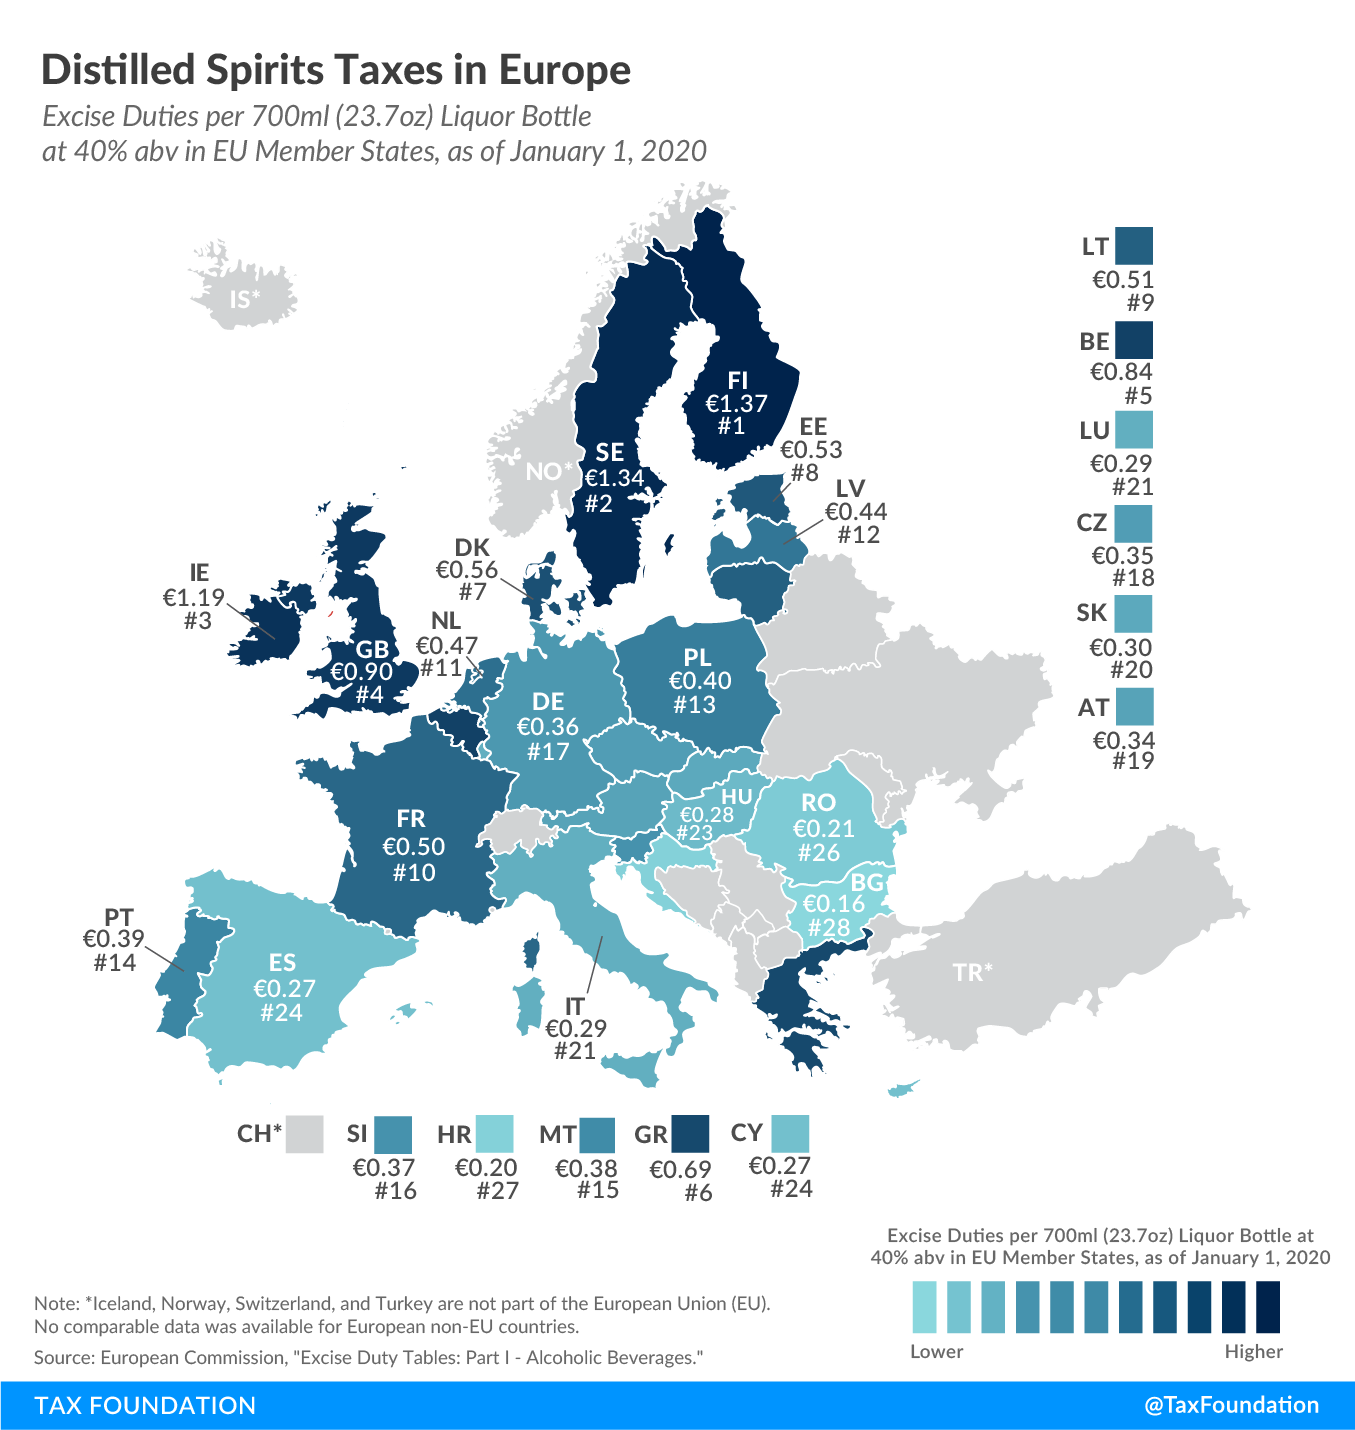 Excise duty on alcohol in Europe, EU excise duty on alcohol, distilled spirits taxes in Europe, EU distilled spirits tax, EU liquor tax